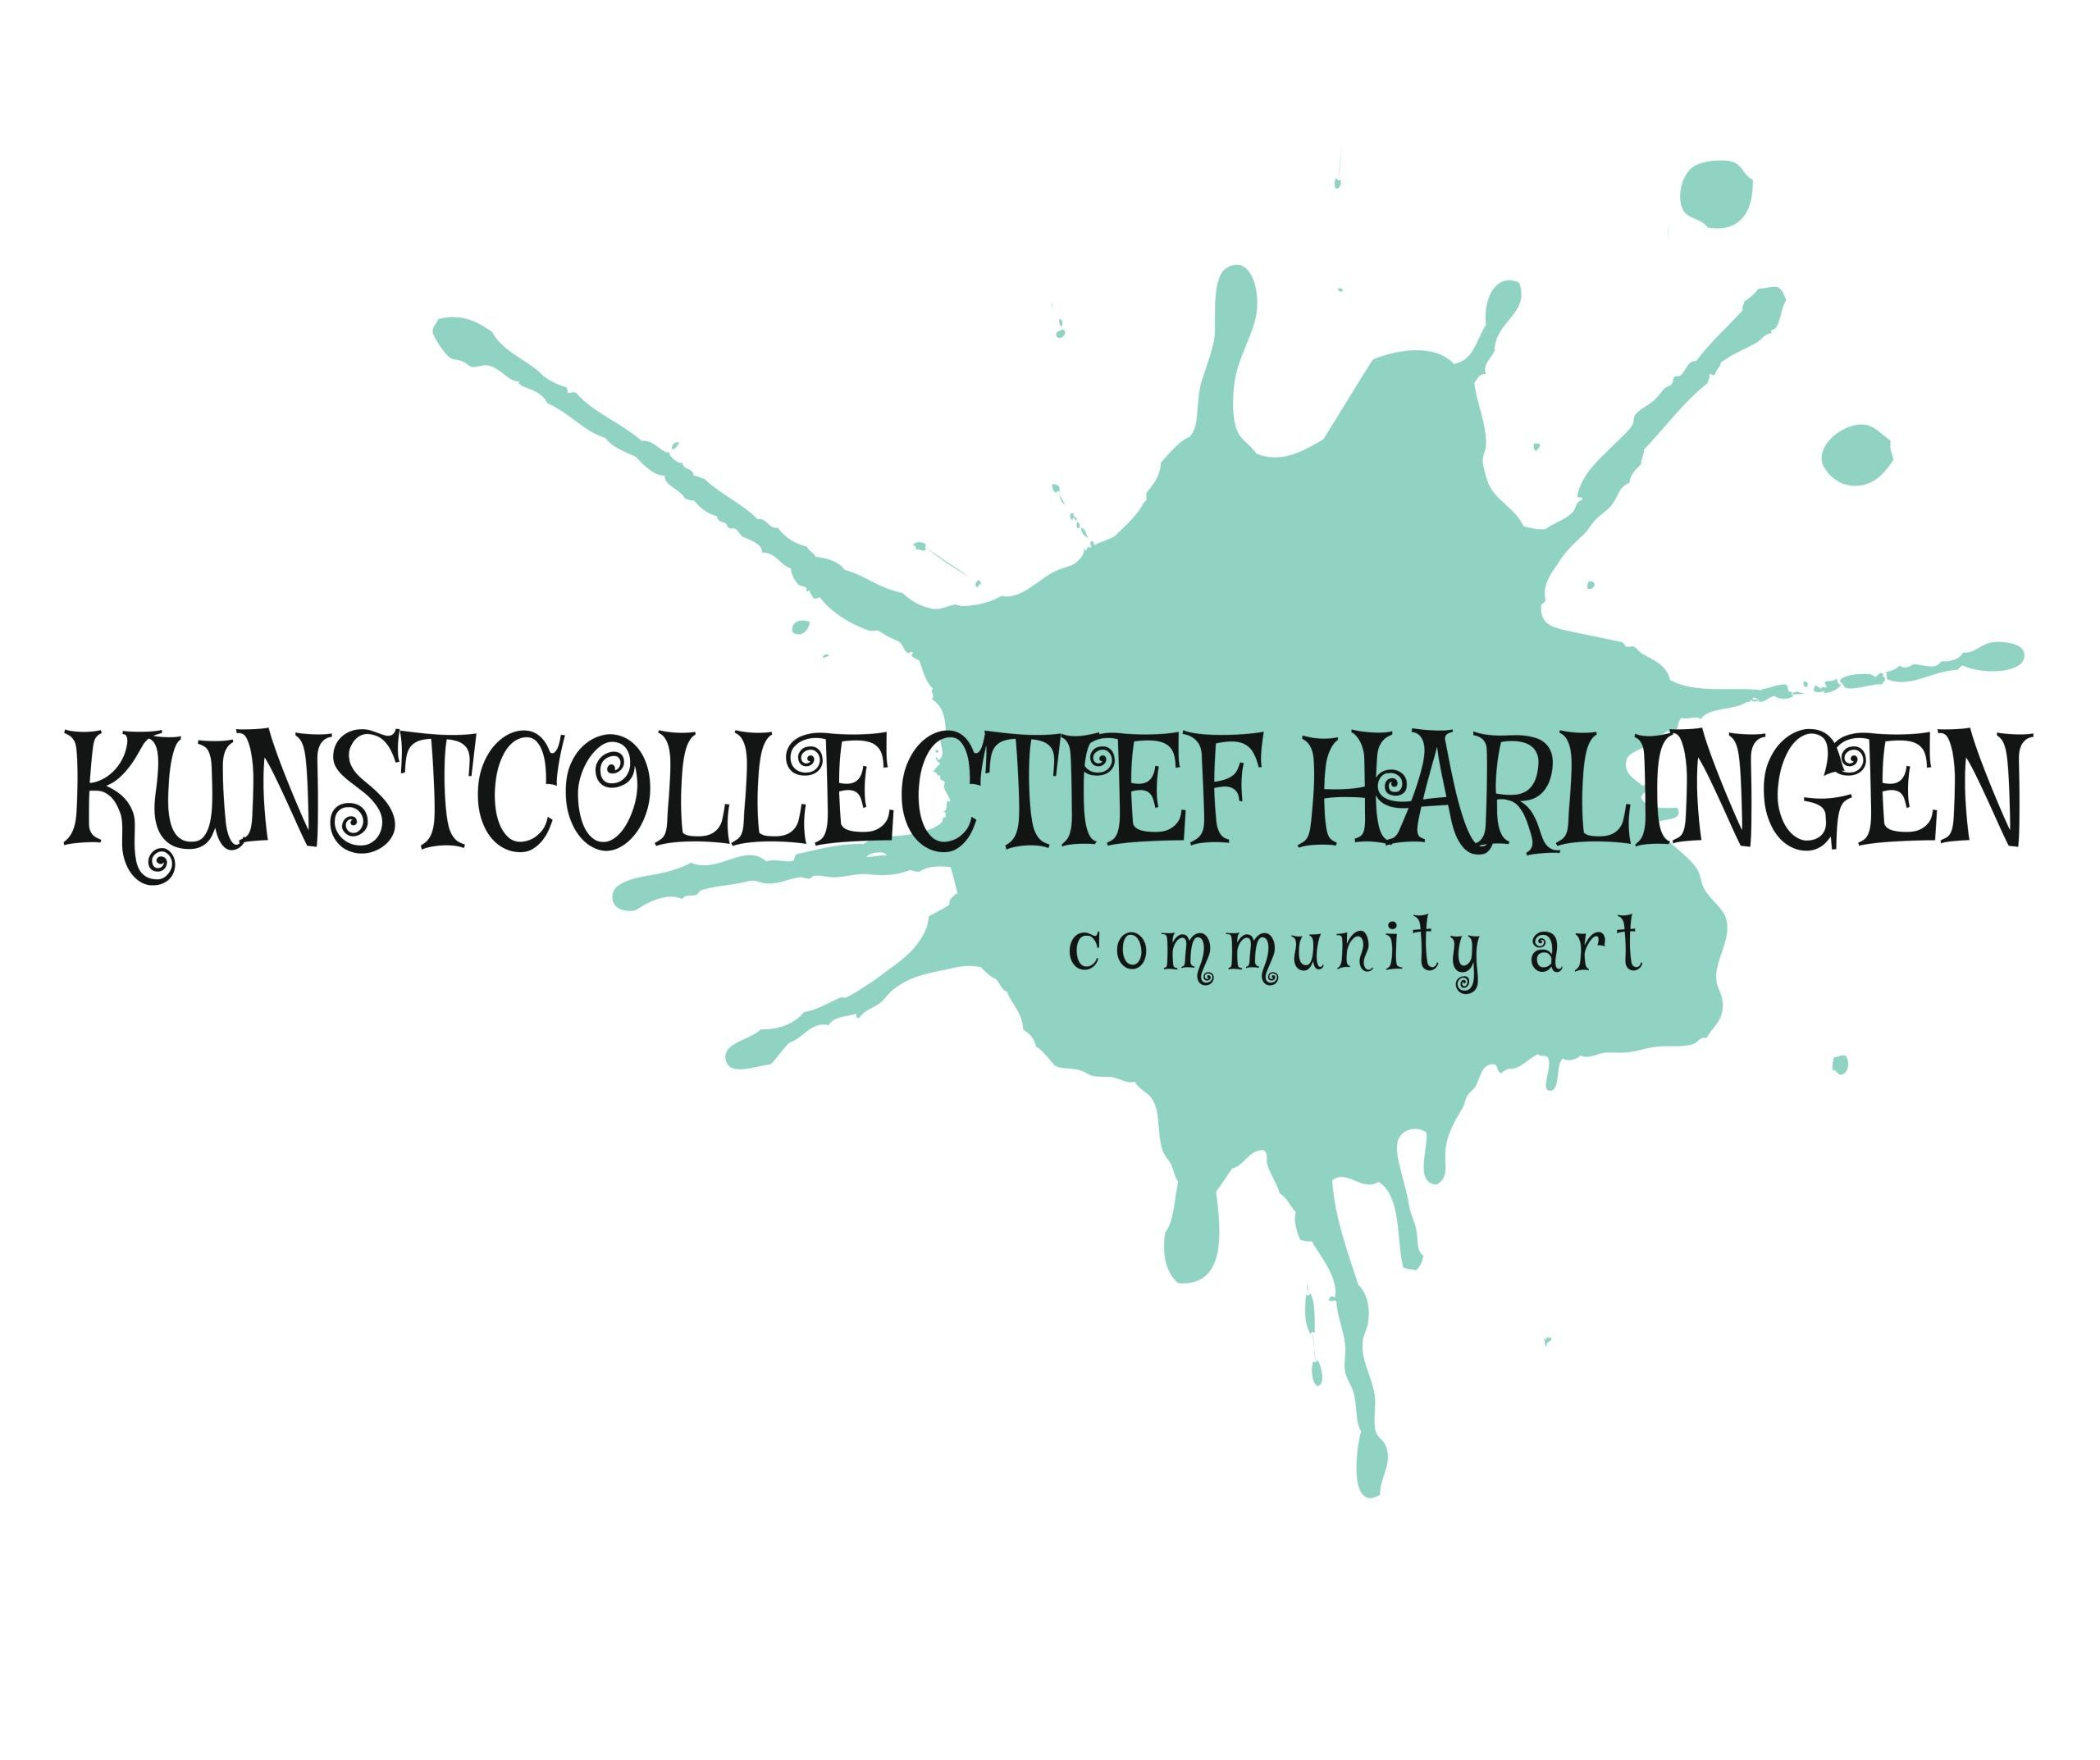 kunstcollectiefharlingen, Harlingen, community art